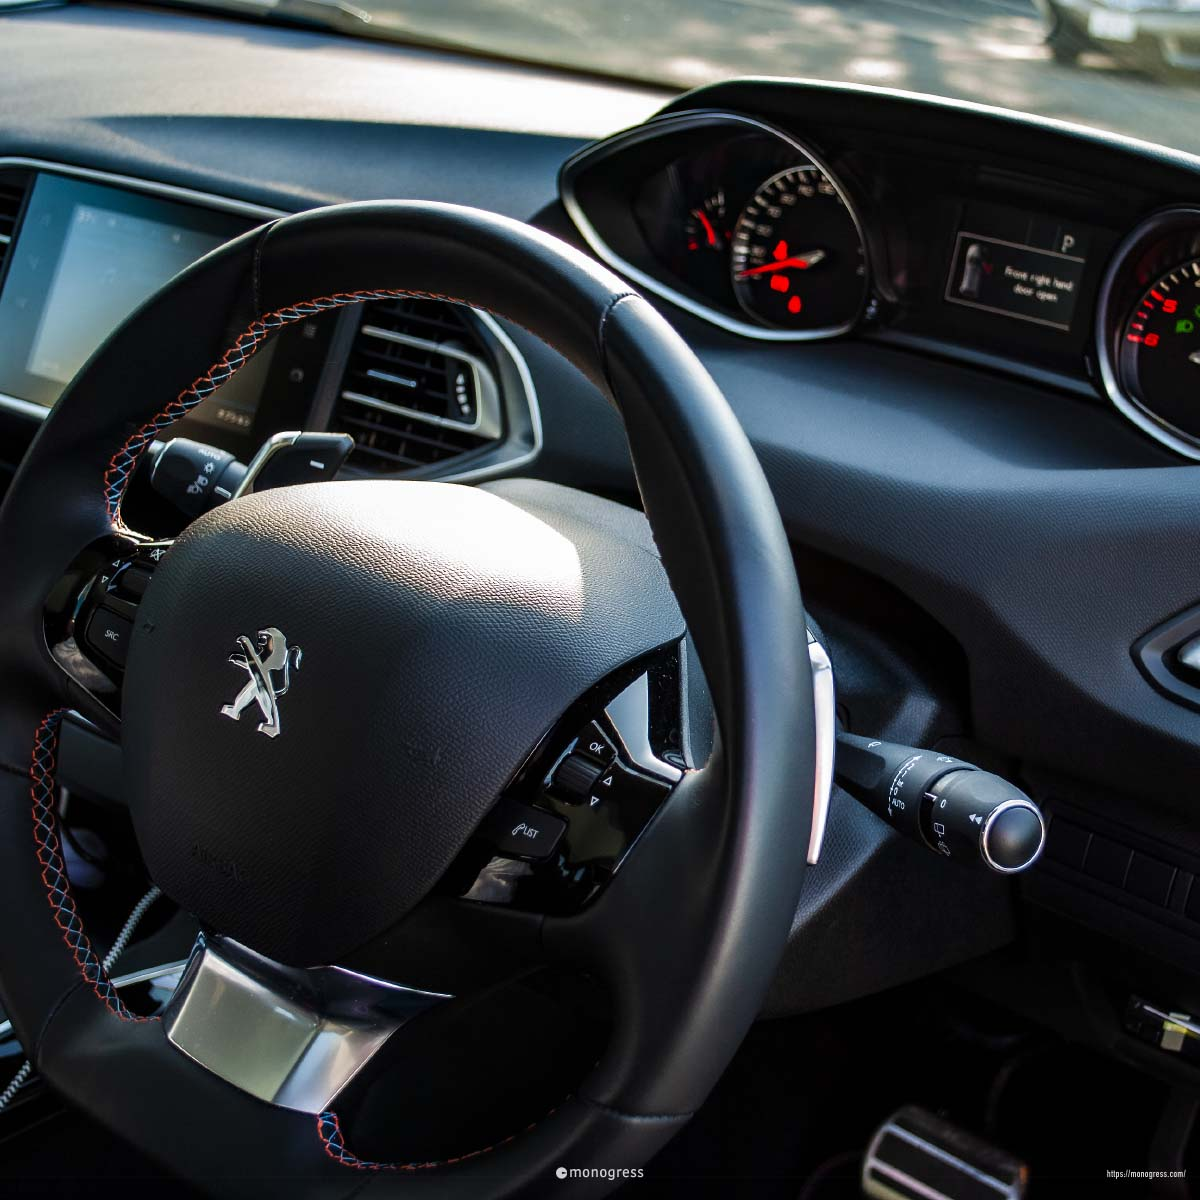 PEUGEOT 308(T9) TECHPACKEDITION コックピット